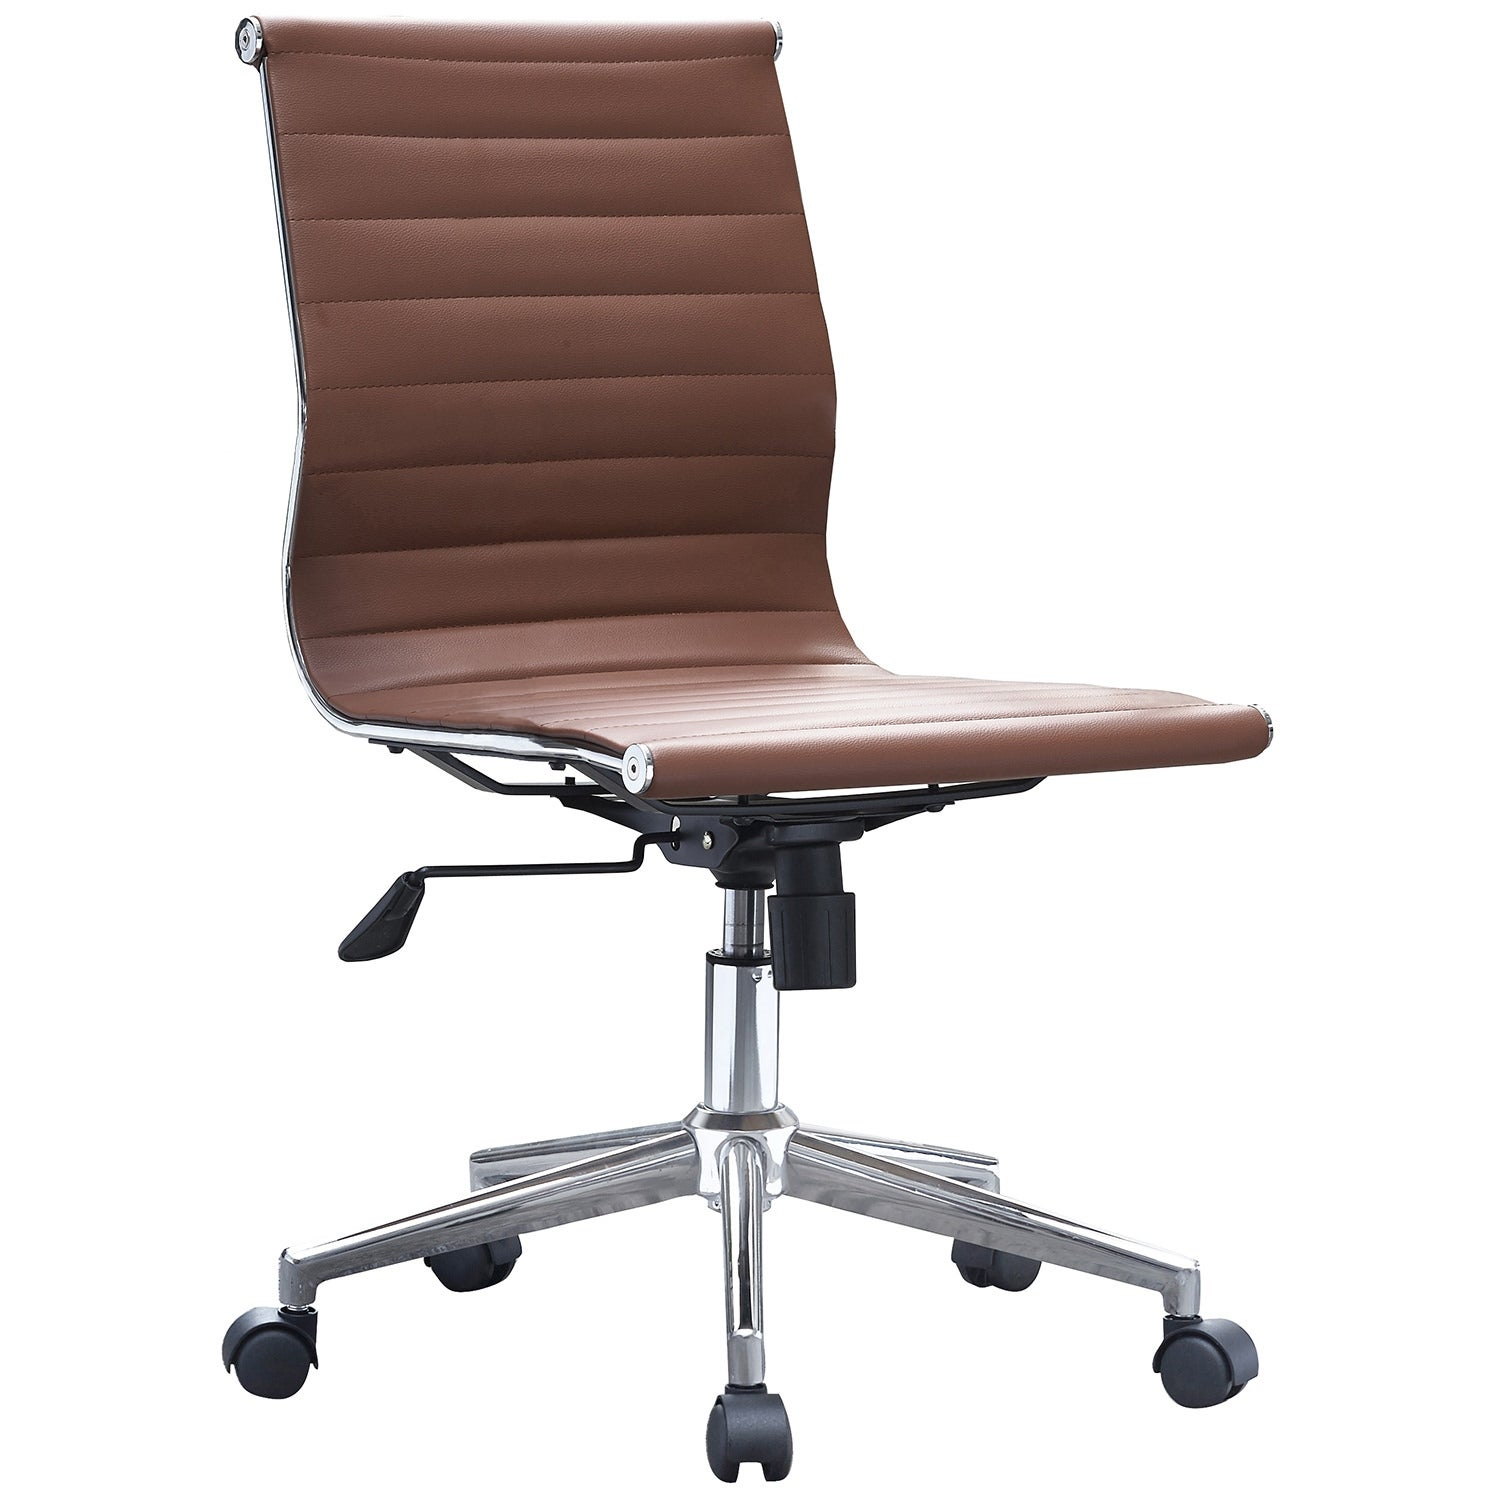 2xhome Swivel Adjustable Height Pu Leather Office Chair Mid Back Armless No Arms Side Ribbed Executive Ergonomic Task Work On Sale Overstock 14390900